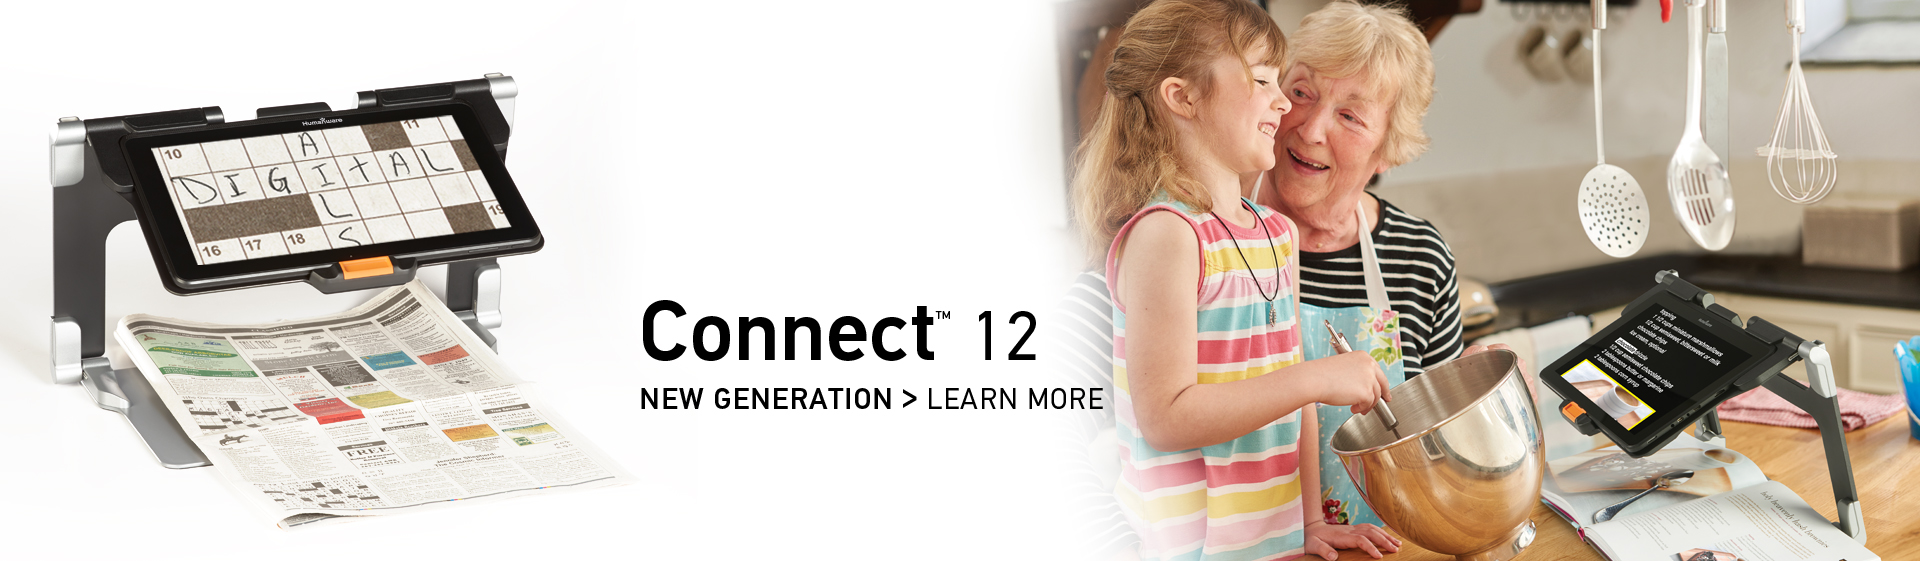 Connect 12 - New Generation > LEARN MORE